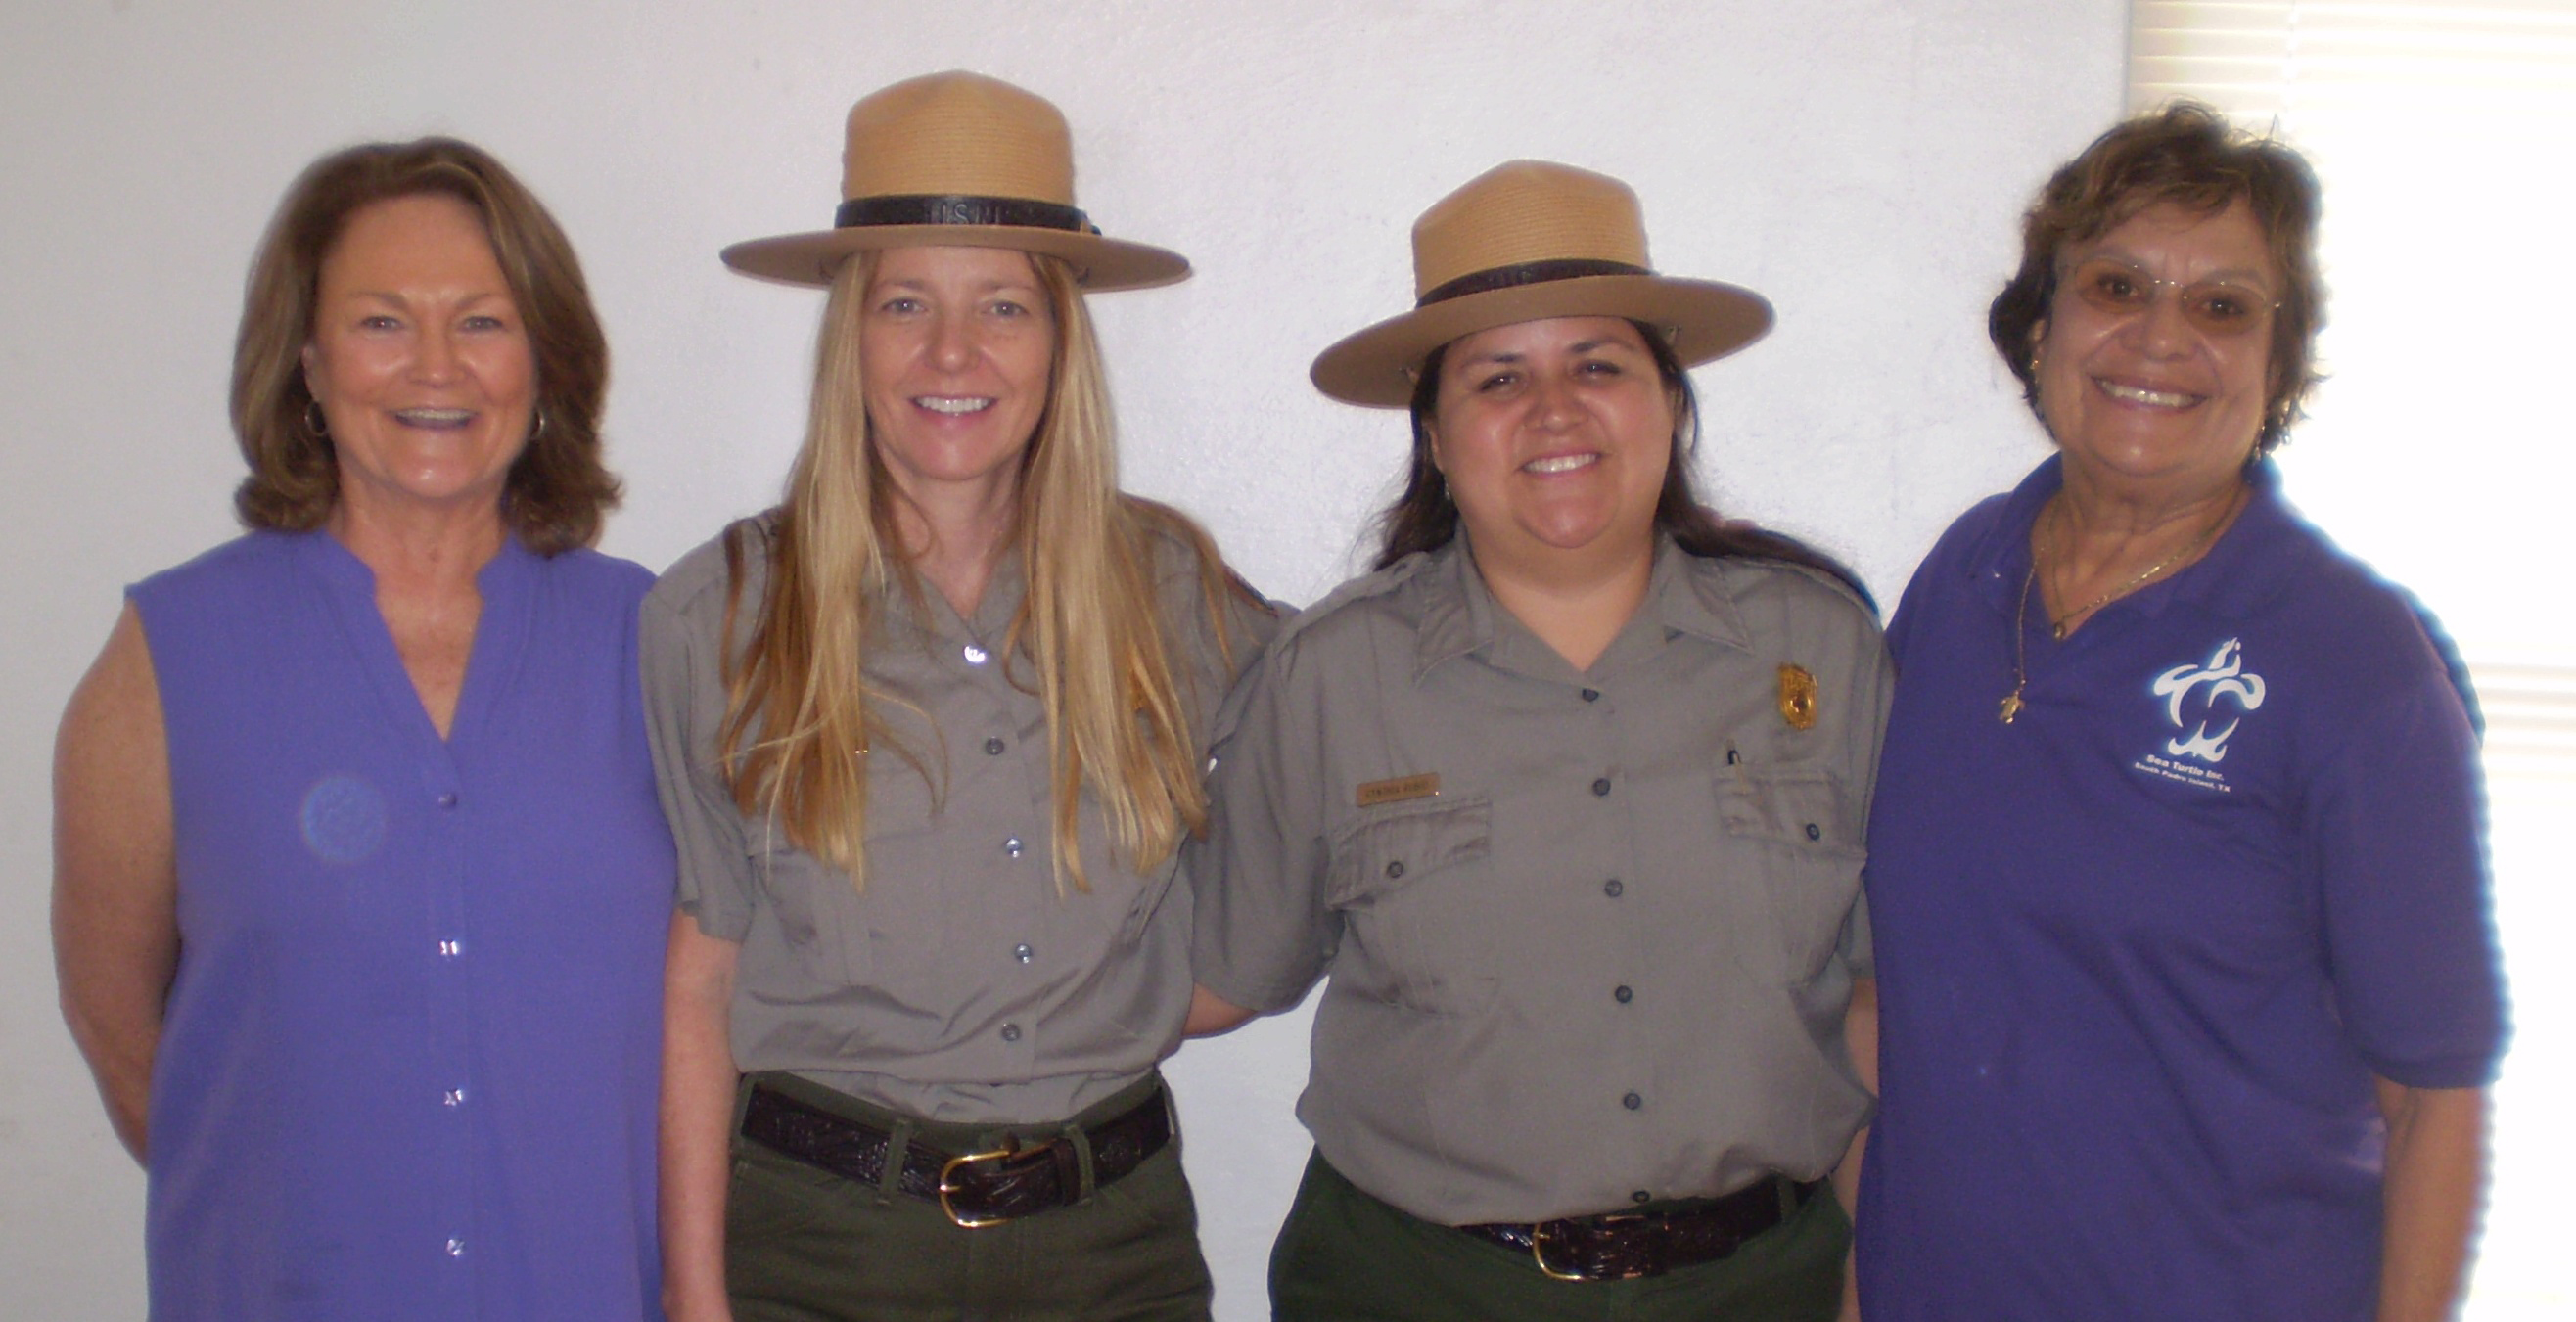 Donna Shaver and Cynthia Rubio with Patti Pitcock and Mary Ann Tous at 2009 Turtle Patrol Training